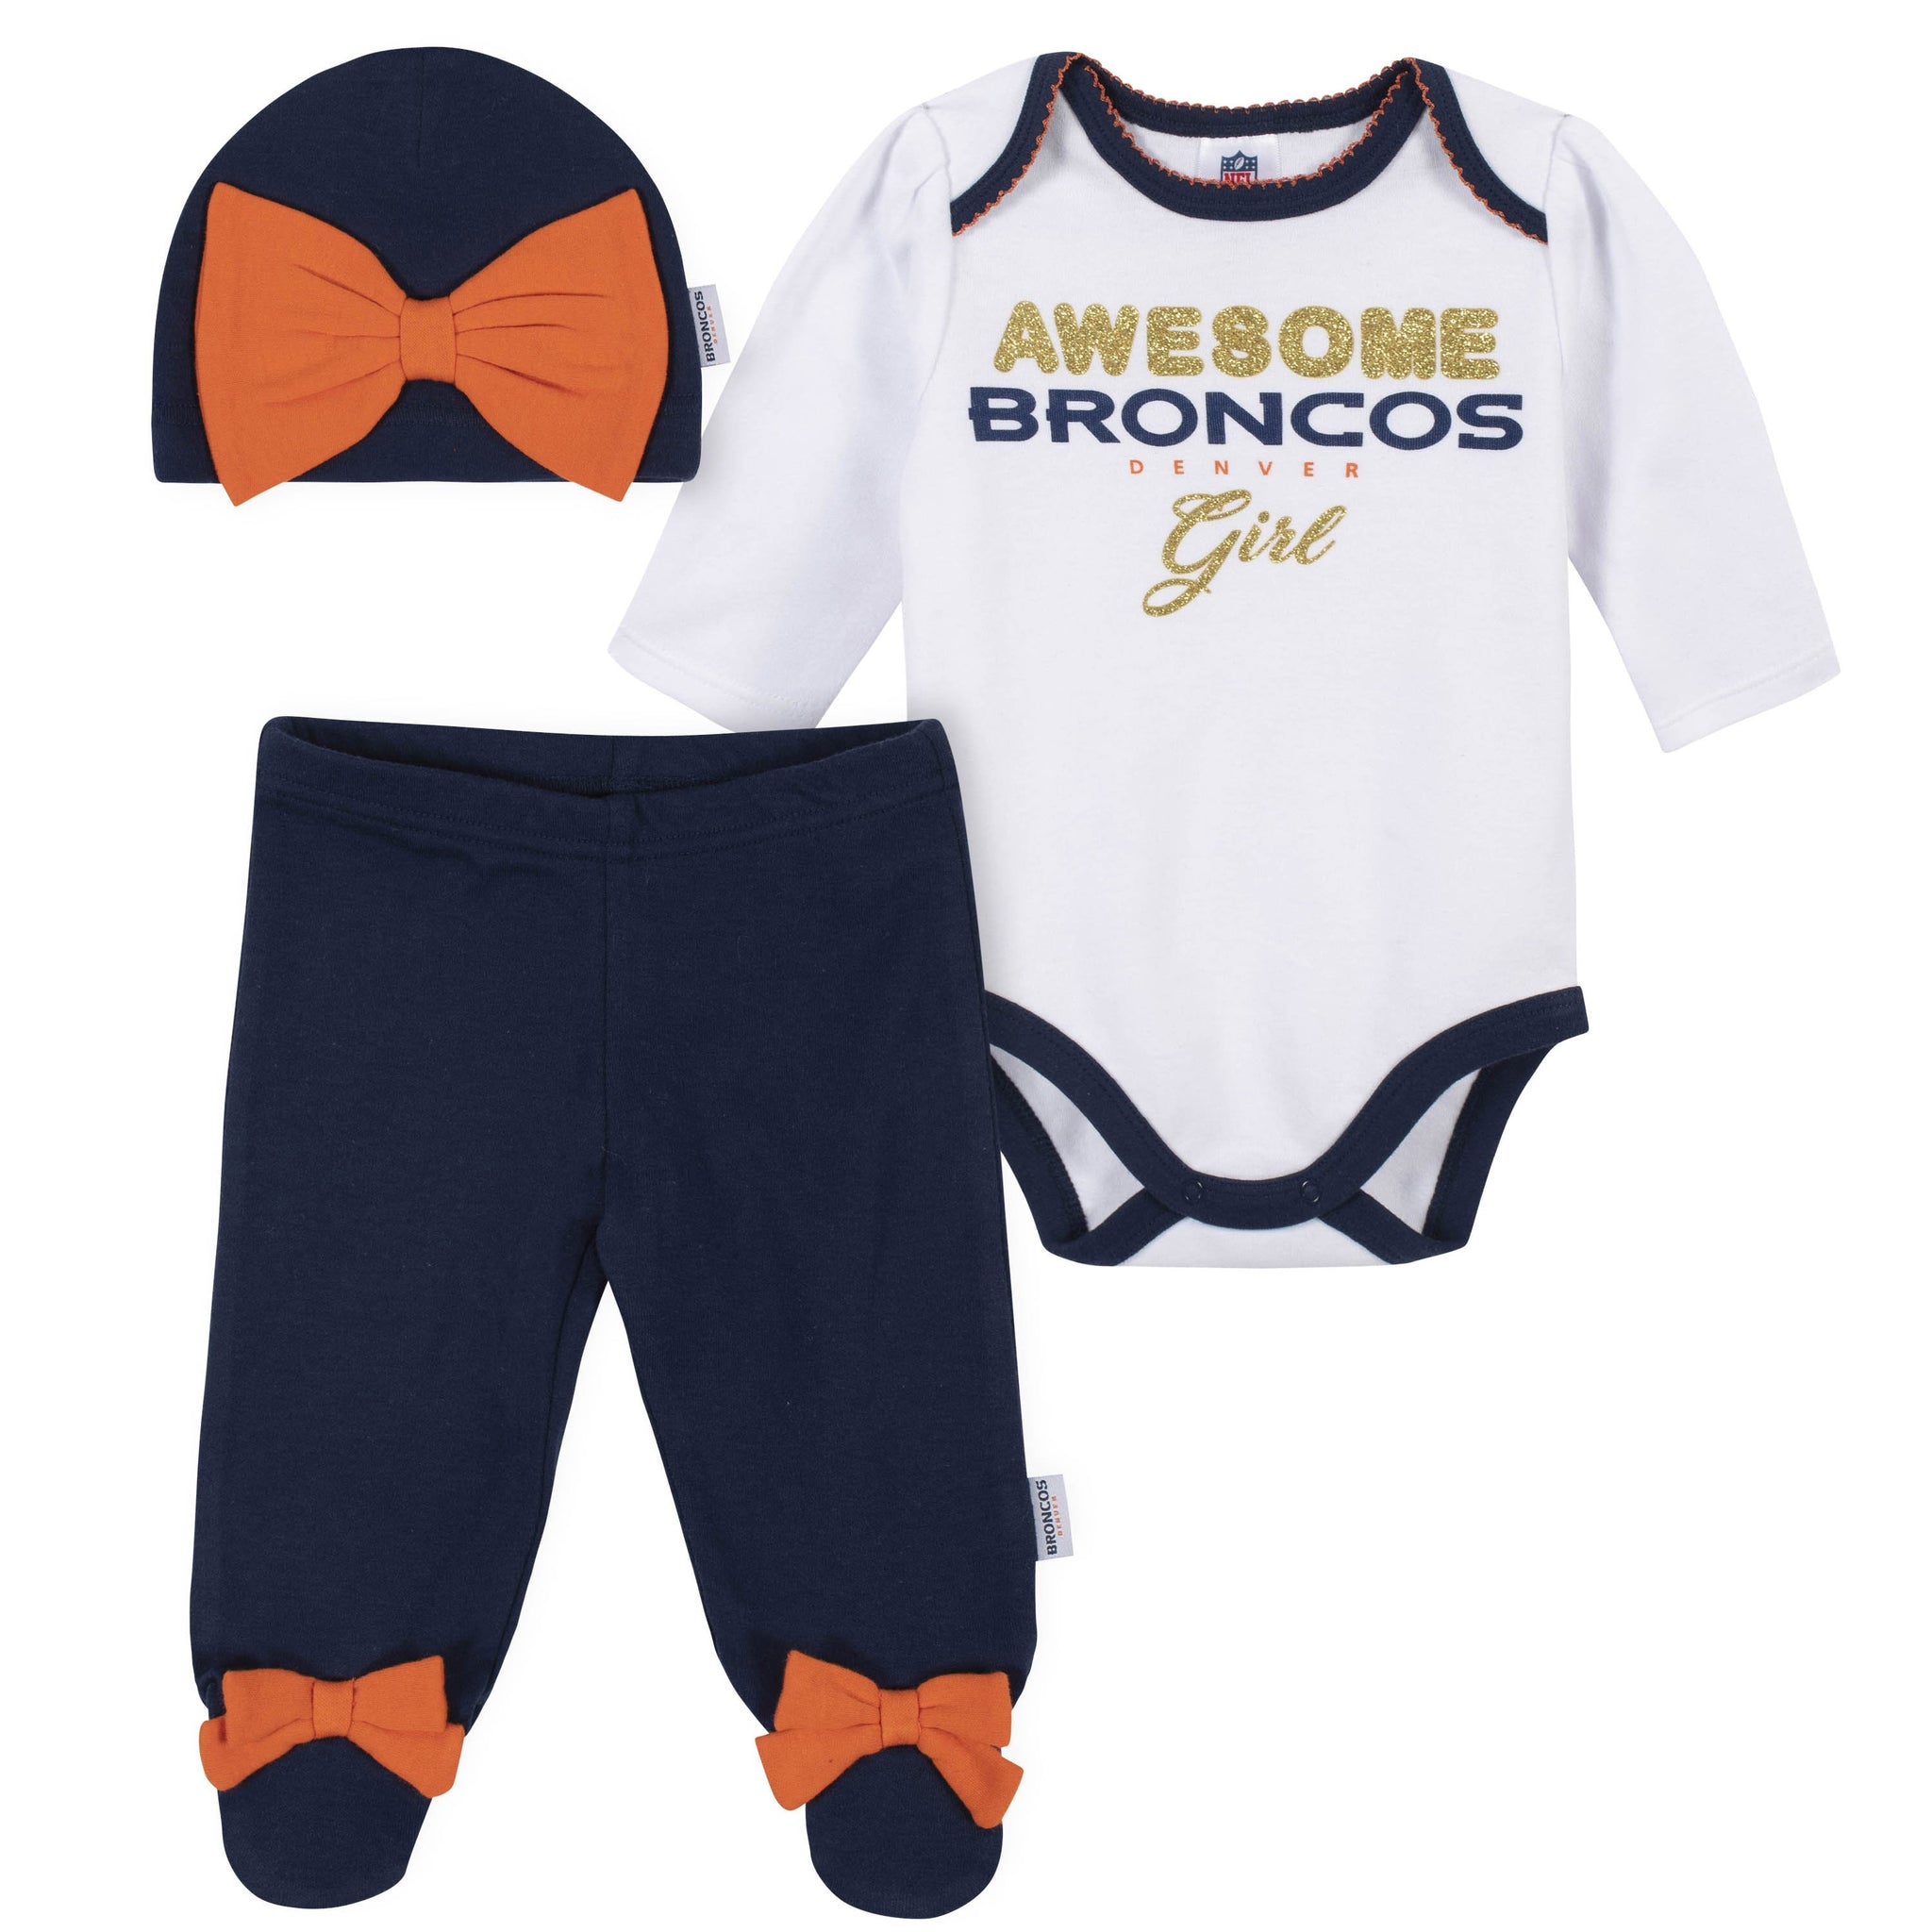 Baby Girls Denver Broncos 3-Piece Bodysuit, Pant, and Cap Set-Gerber Childrenswear